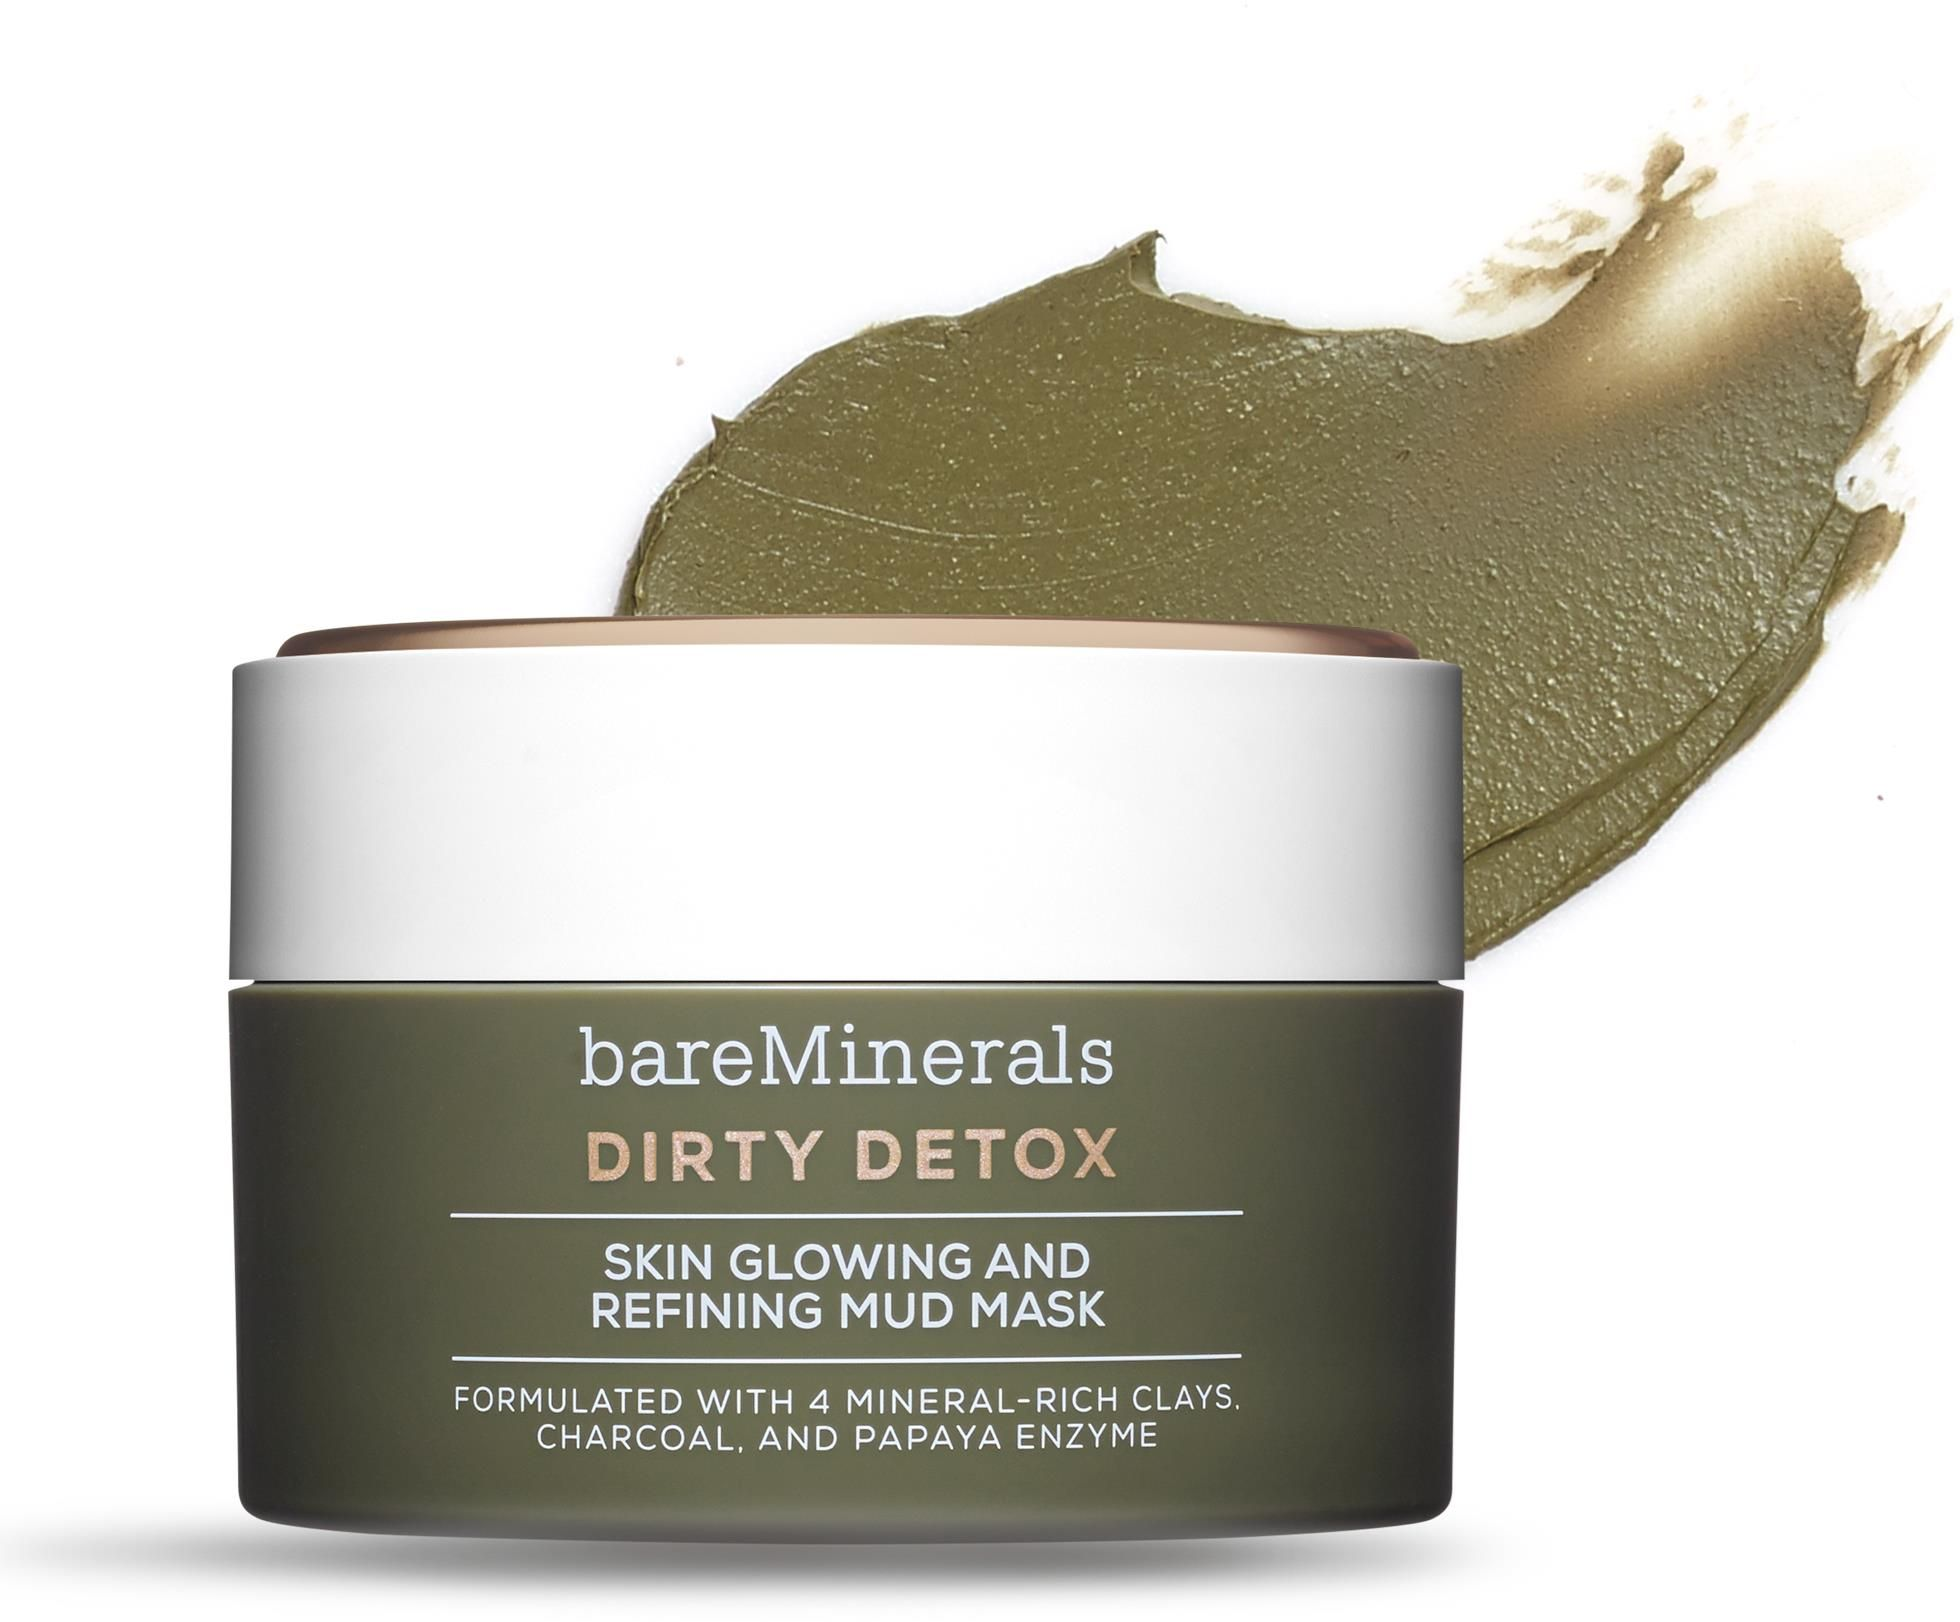 Dirty Detox Skin Glowing & Refining Mud Mask by bareMinerals #14